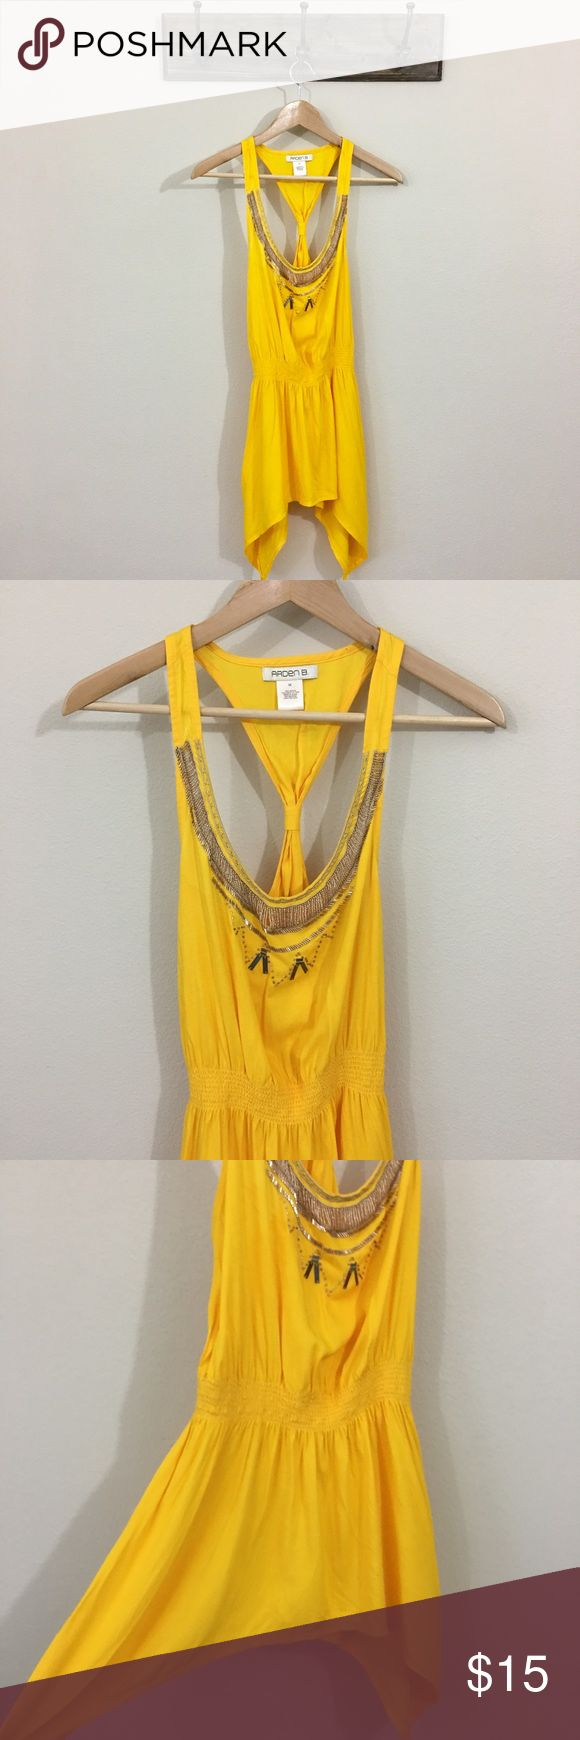 Arden B. Tank Top Bright yellow racerback tank top, perfect for a summer night night, or a pop of color underneath a blazer. Asymmetrical length on the sides makes for a flattering flowy look with the fabric. Silvery sequin embellishment along the neck line. Arden B Tops Tank Tops